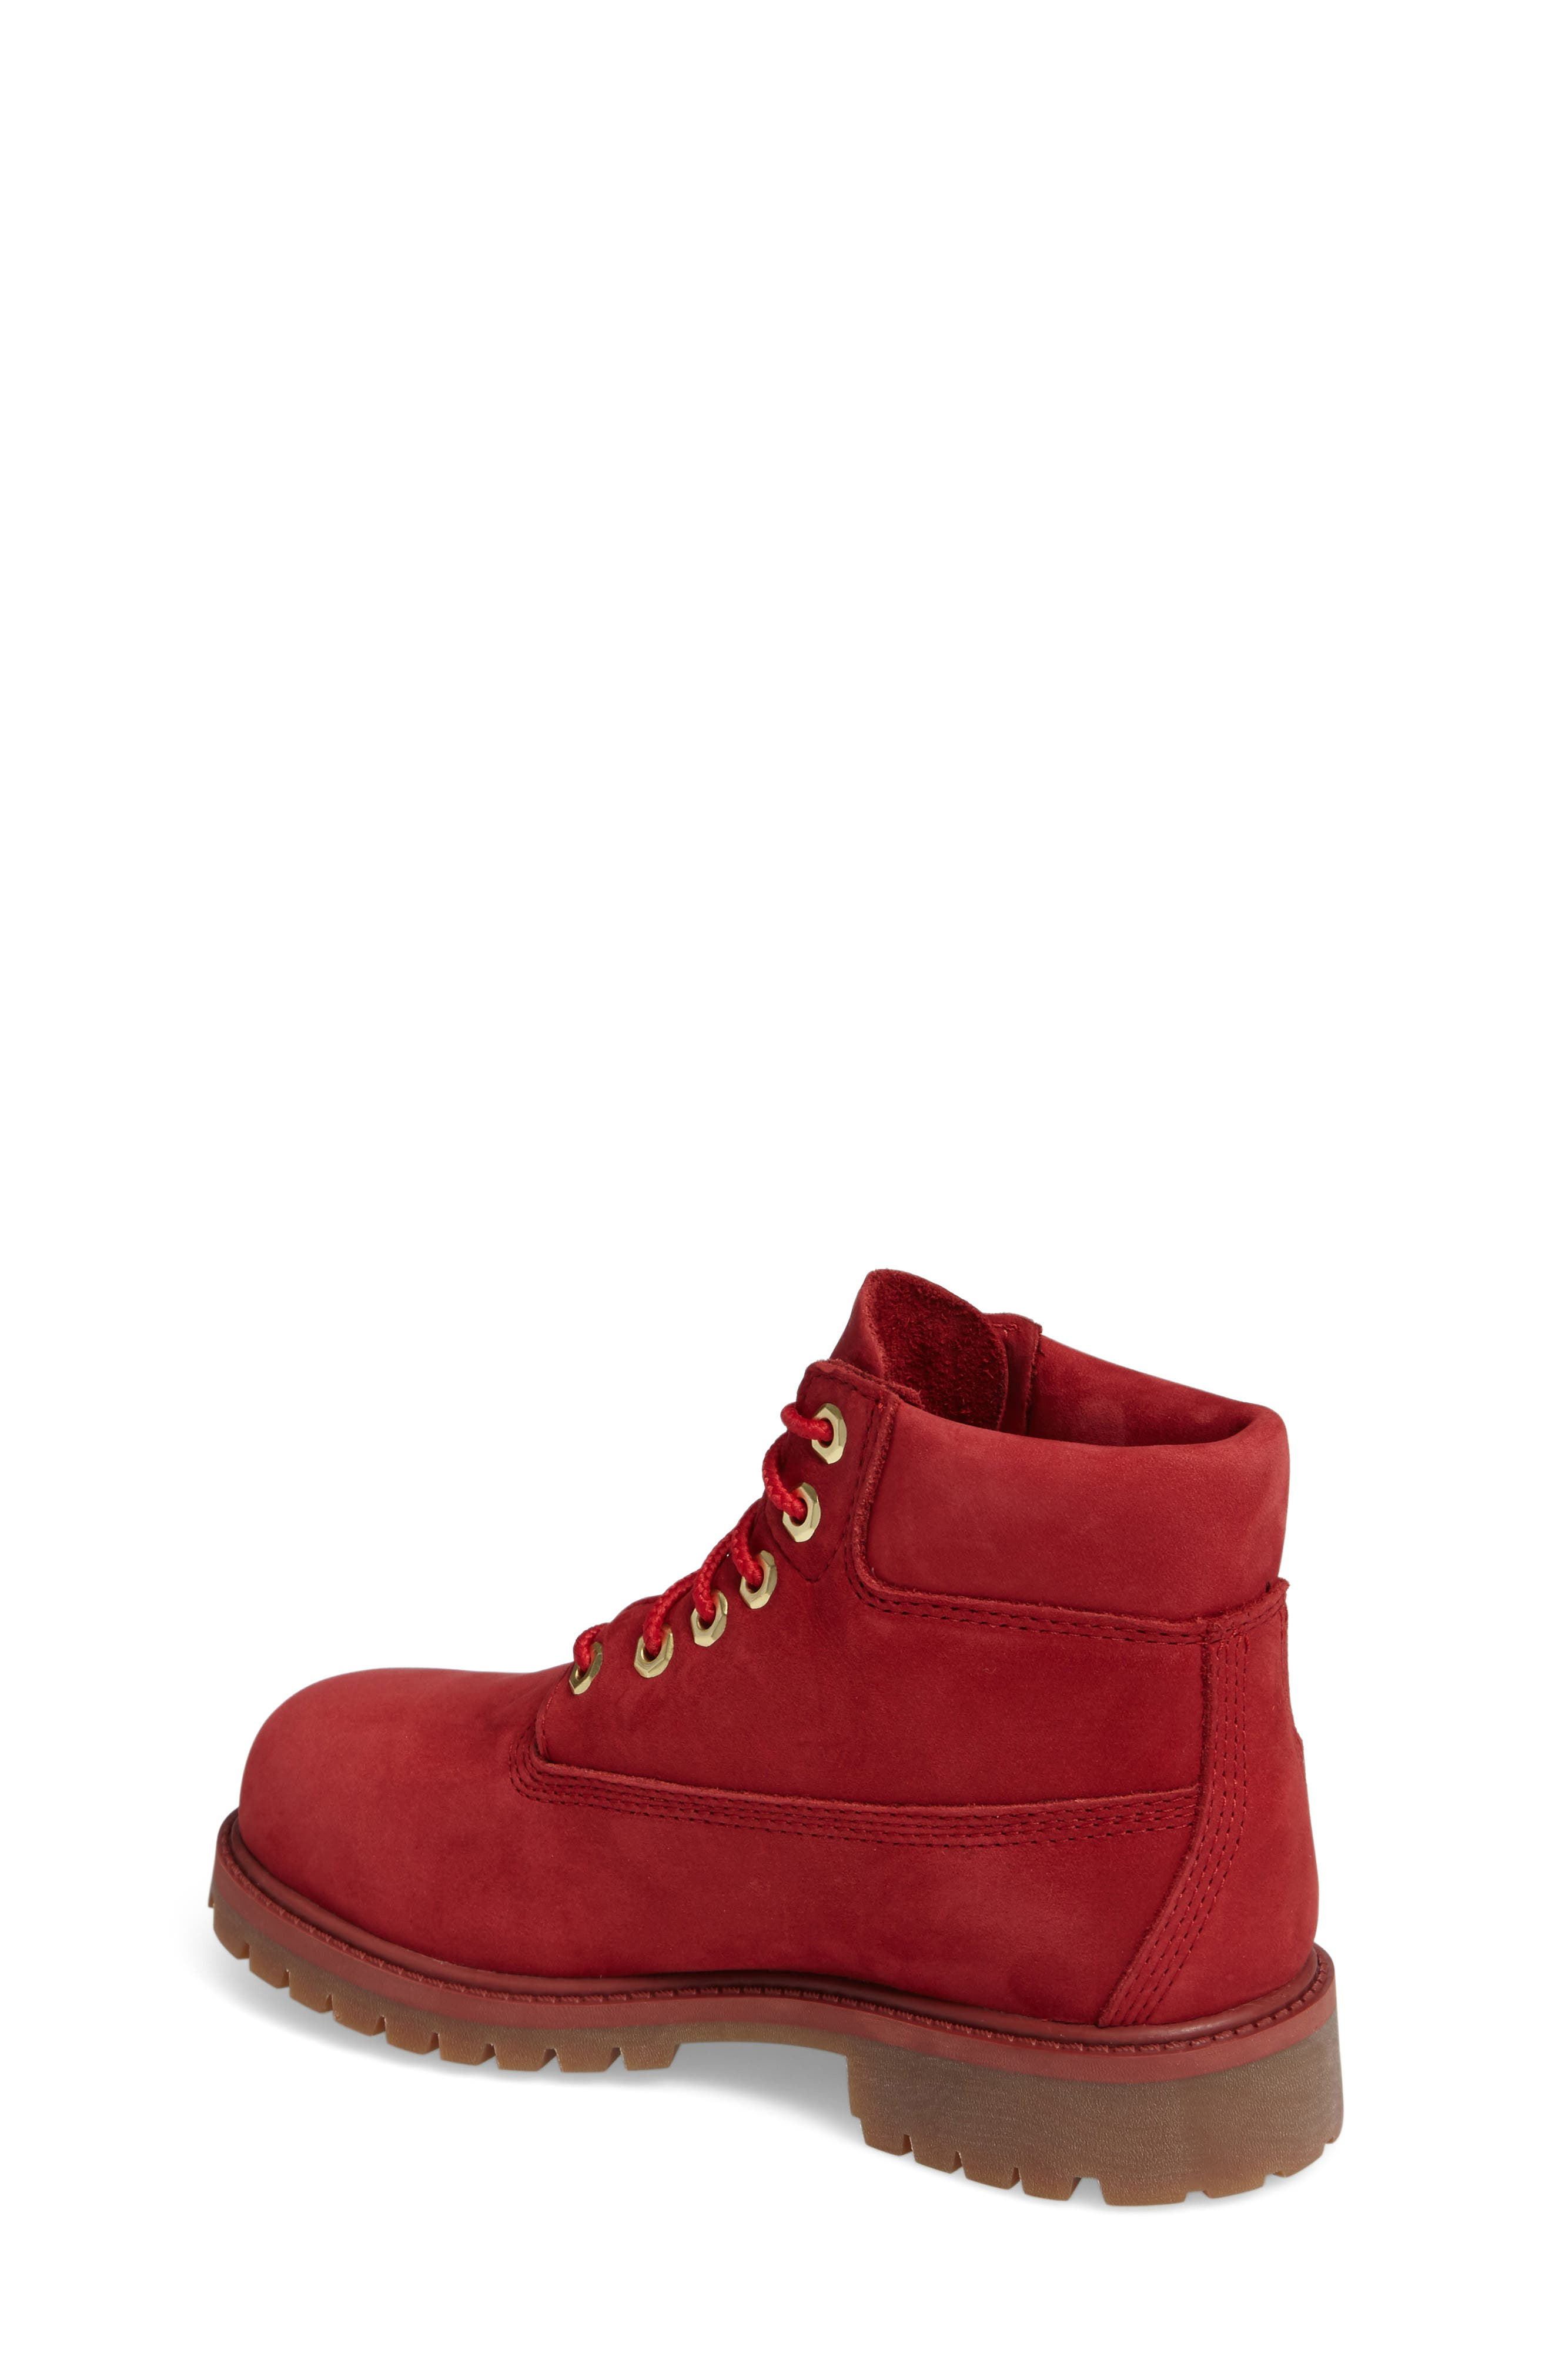 40th Anniversary Ruby Red Waterproof Boot,                             Alternate thumbnail 2, color,                             601